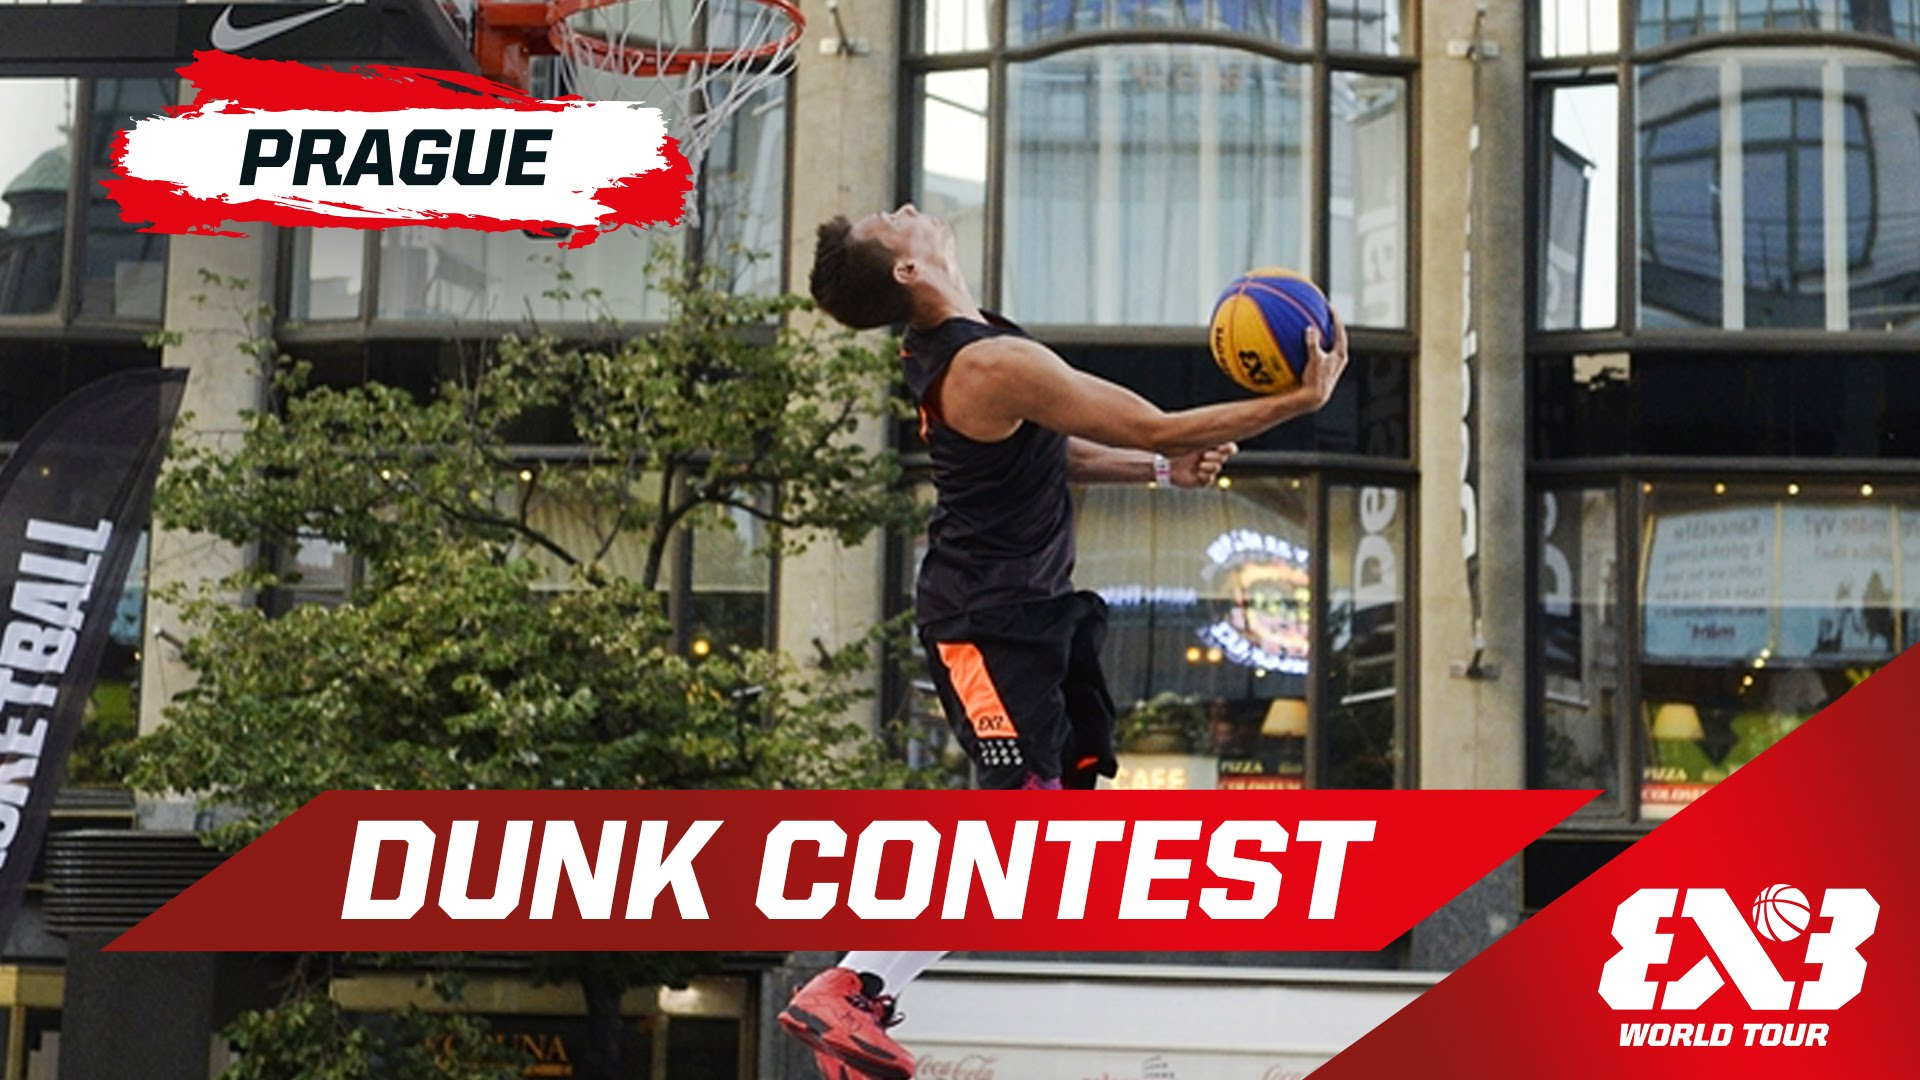 Vidéo : le Dunk Contest du FIBA 3×3 World Tour – Prague